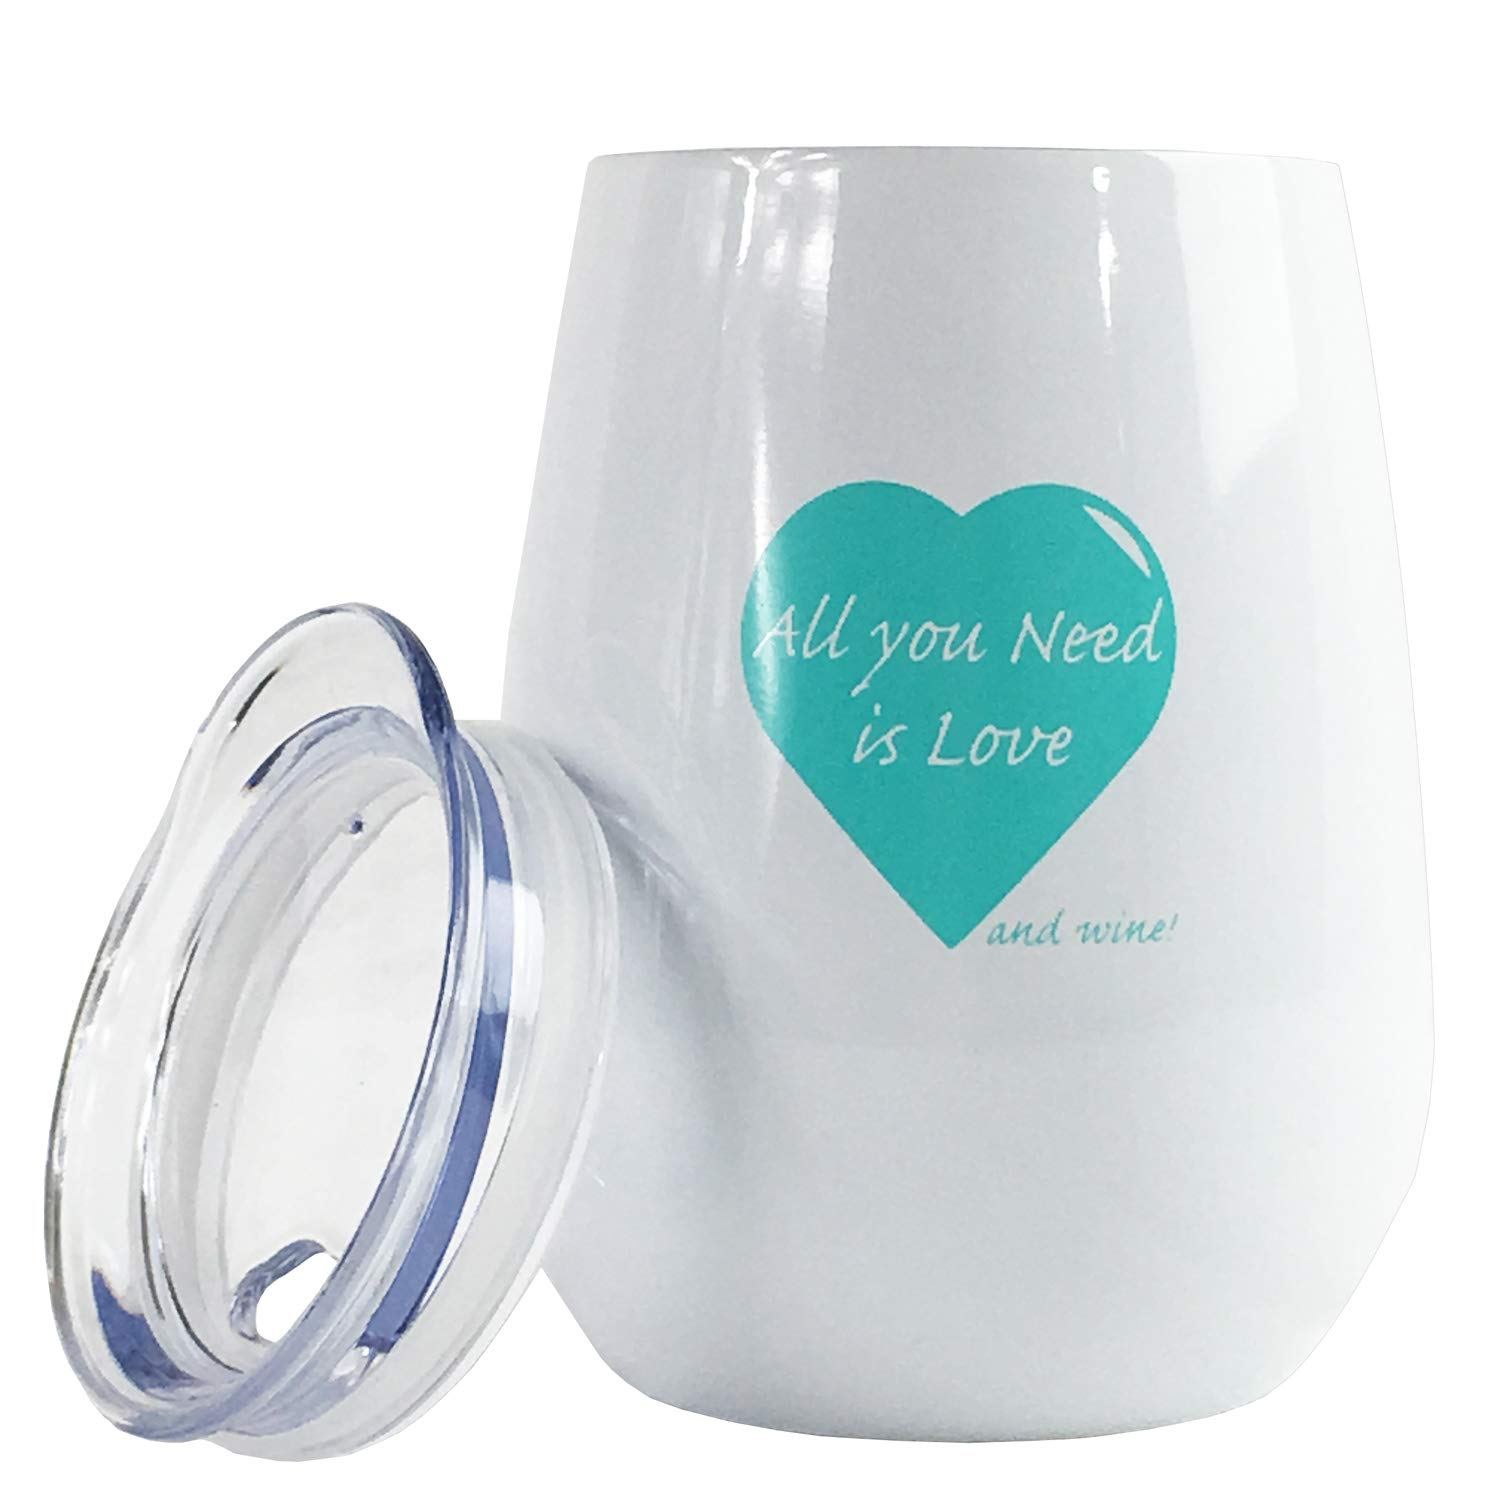 Funny Stainless Steel Wine Tumbler with Lid - All You Need is Love Stemless Wine Glasses Unbreakable and Insulated, 10 oz Teal and Matte Black Tumbler. Funny Wine Gifts for Women